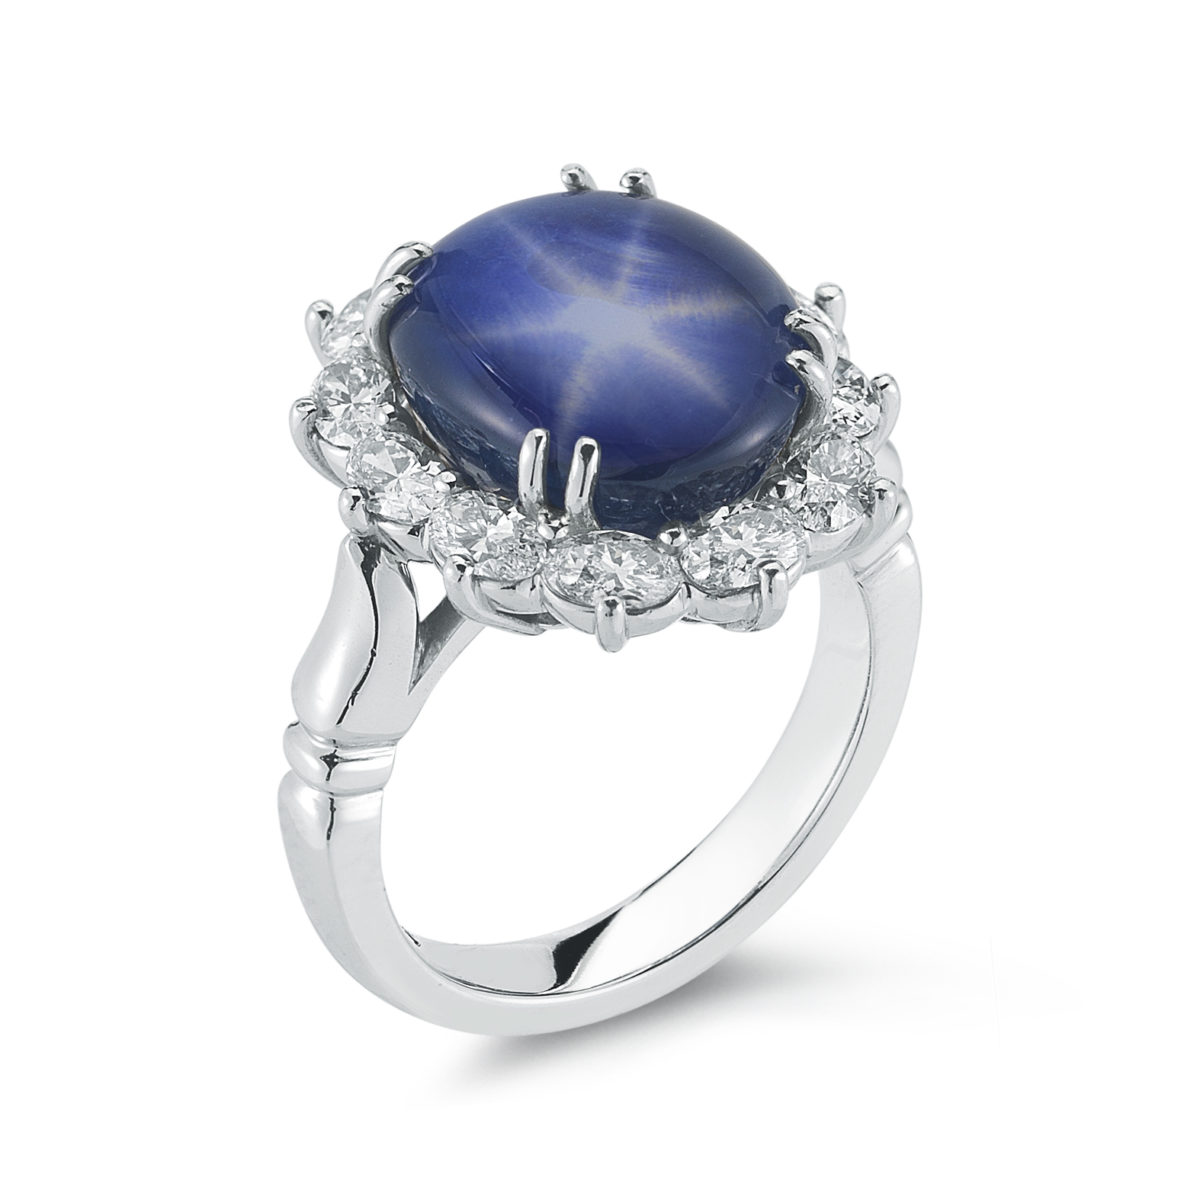 10 60 Carat Star Sapphire Amp Diamond Ring Marshall Pierce